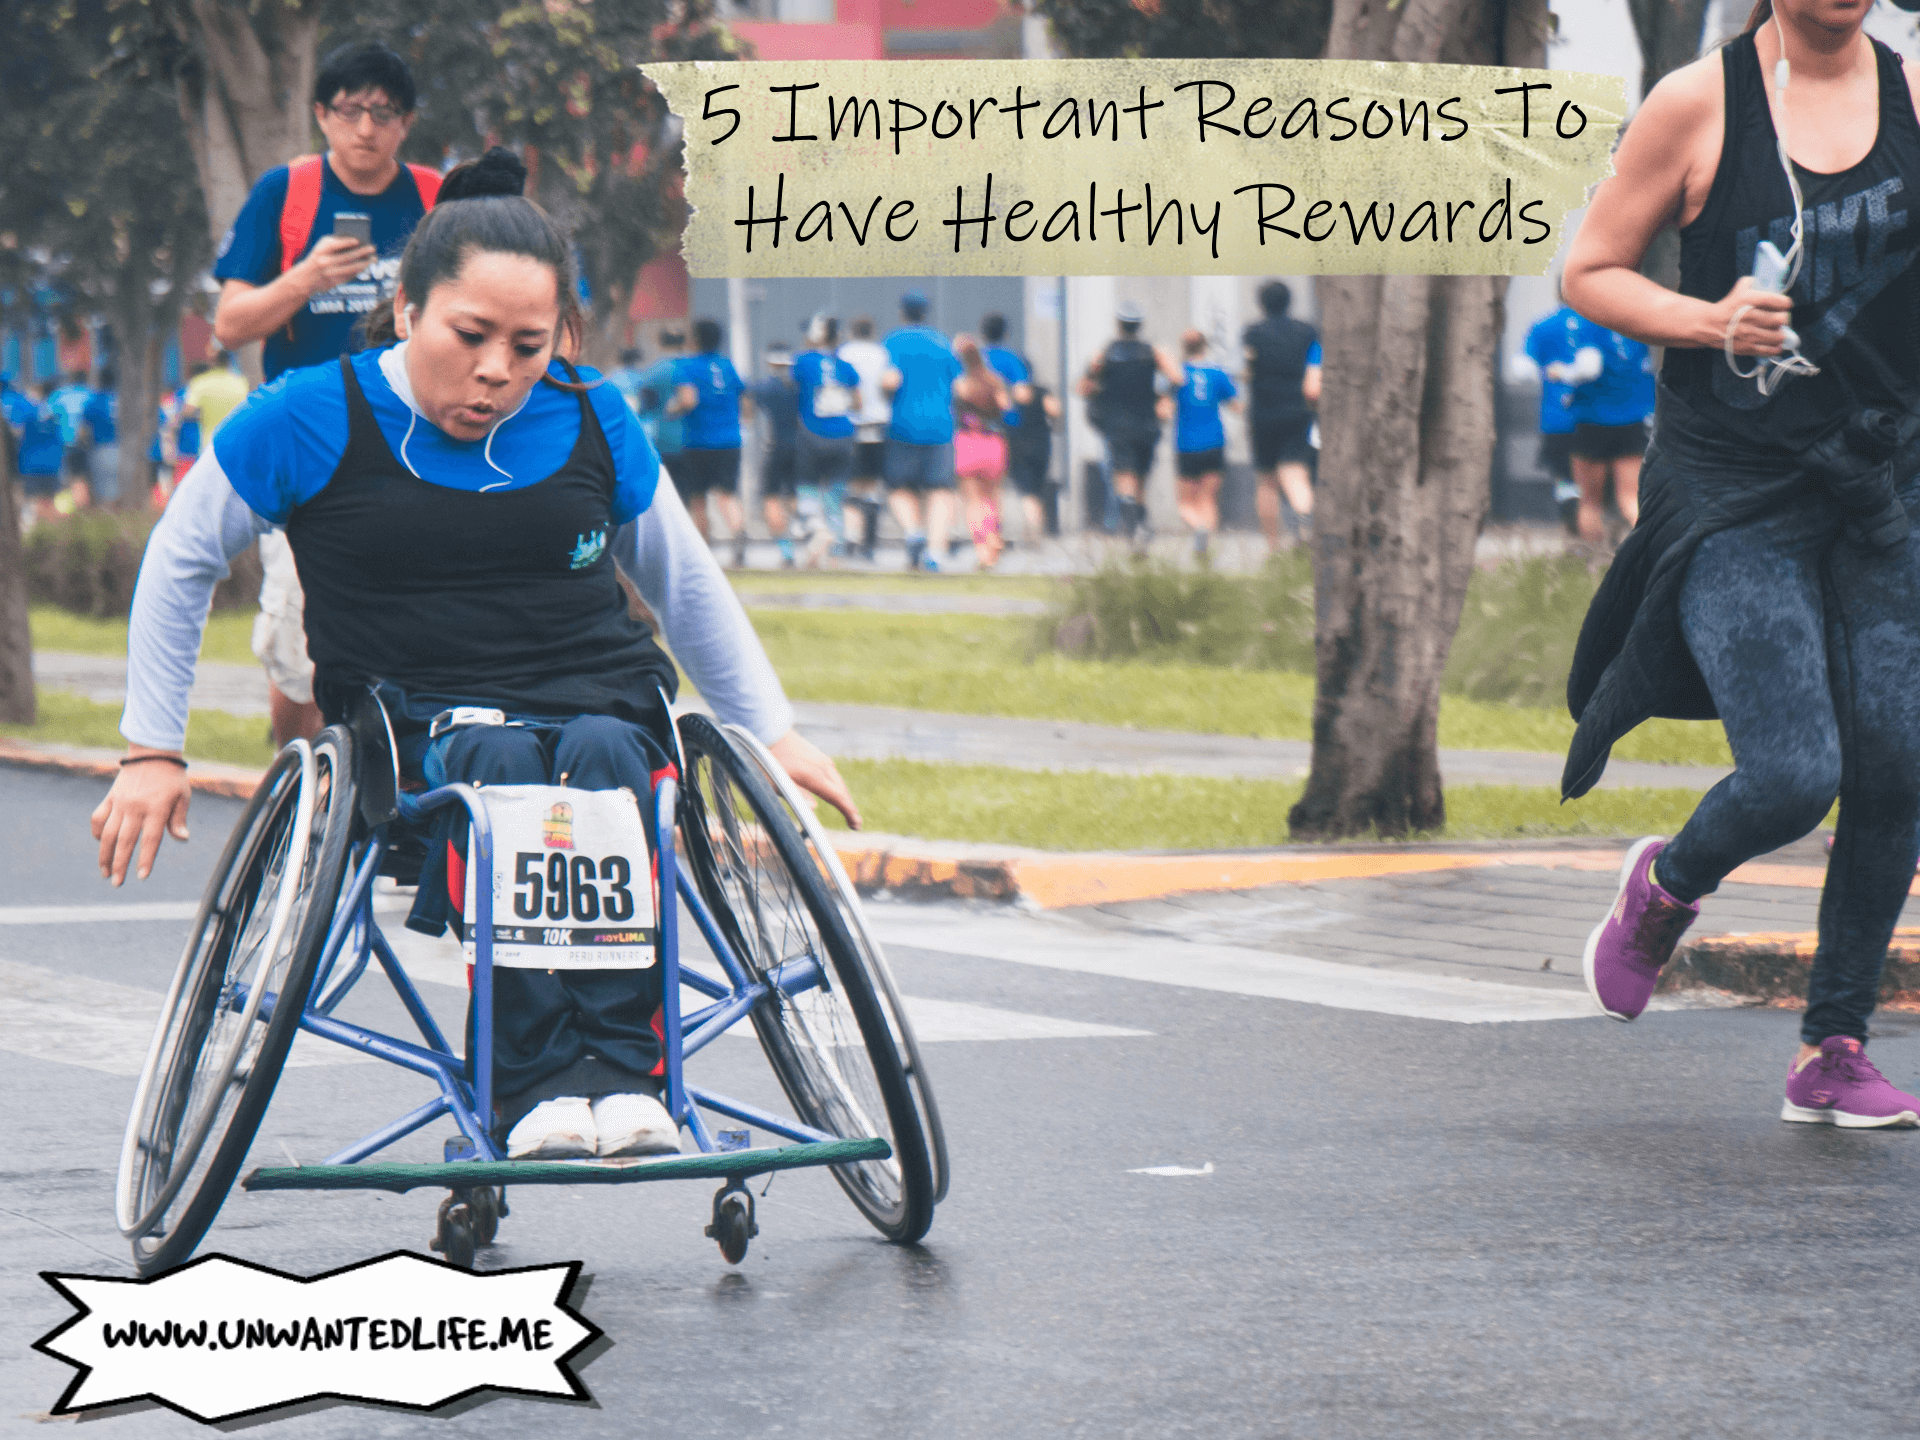 A photo of an Asian woman in a wheelchair taking part in a marathon with the title of the article - 5 Important Reasons To Have Healthy Rewards - across the top of the photo